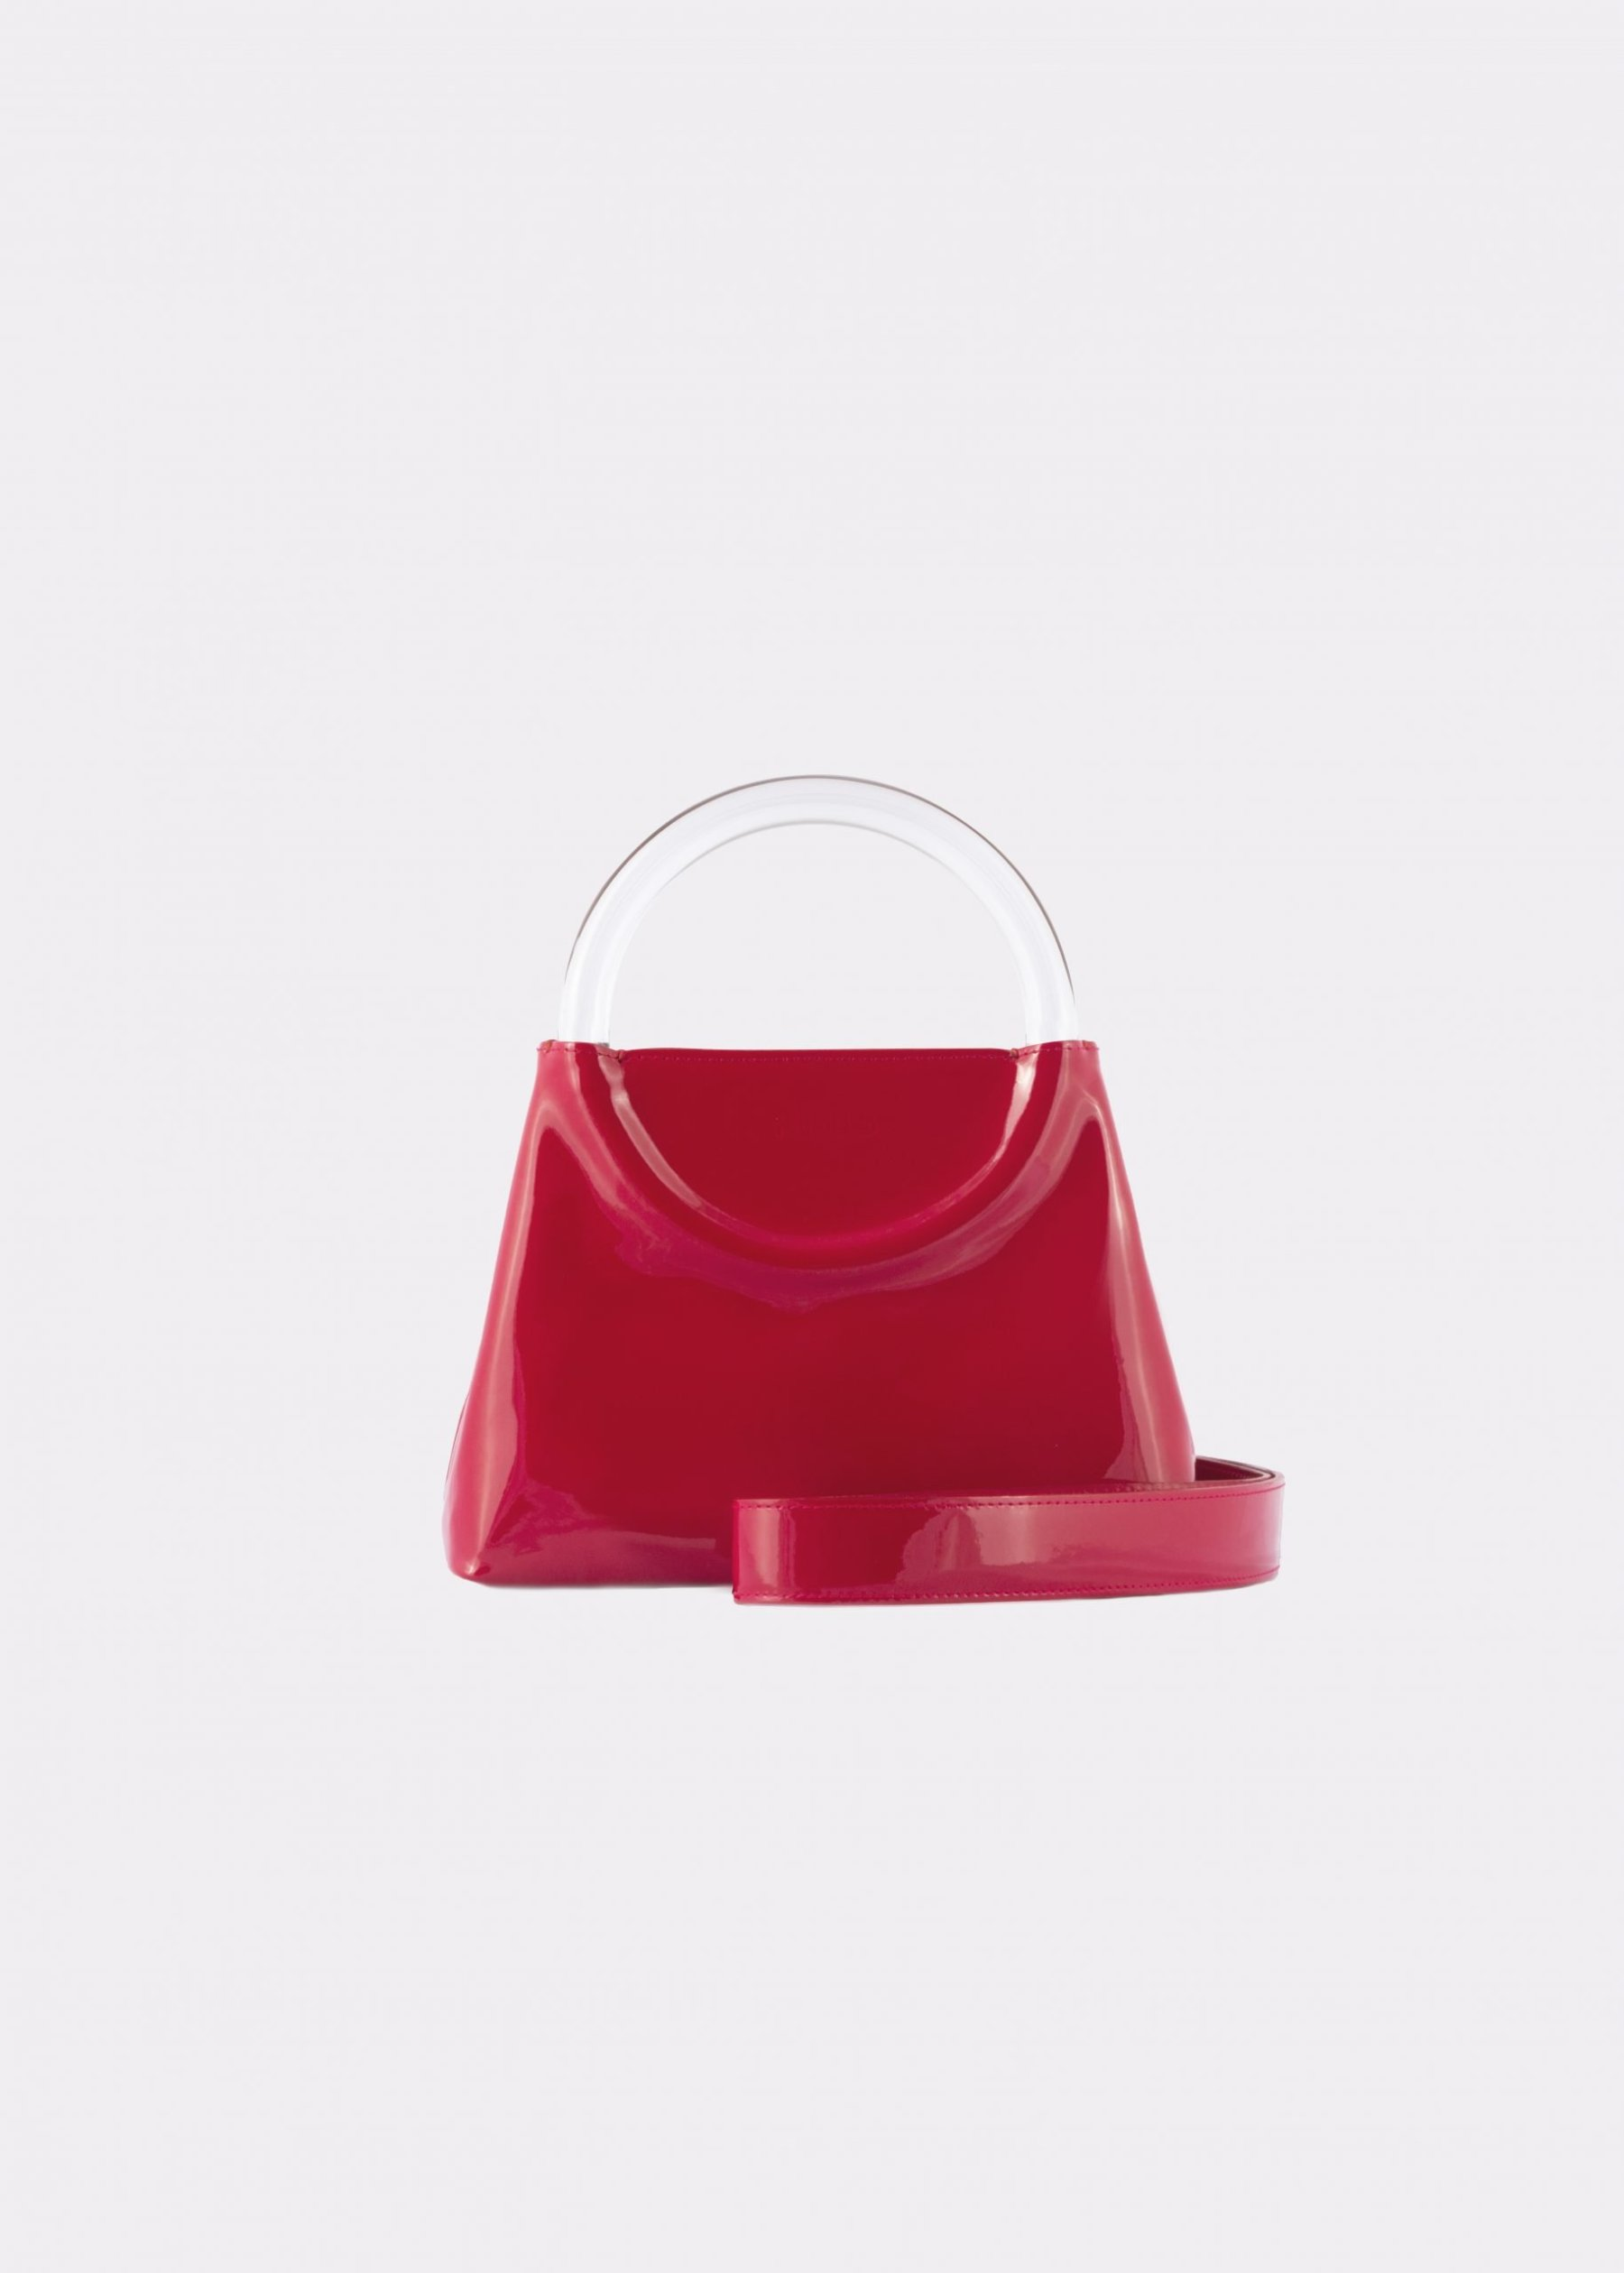 NIDO Bolla Mini Cherry Red patent leather-Plexy_shoulder strap view